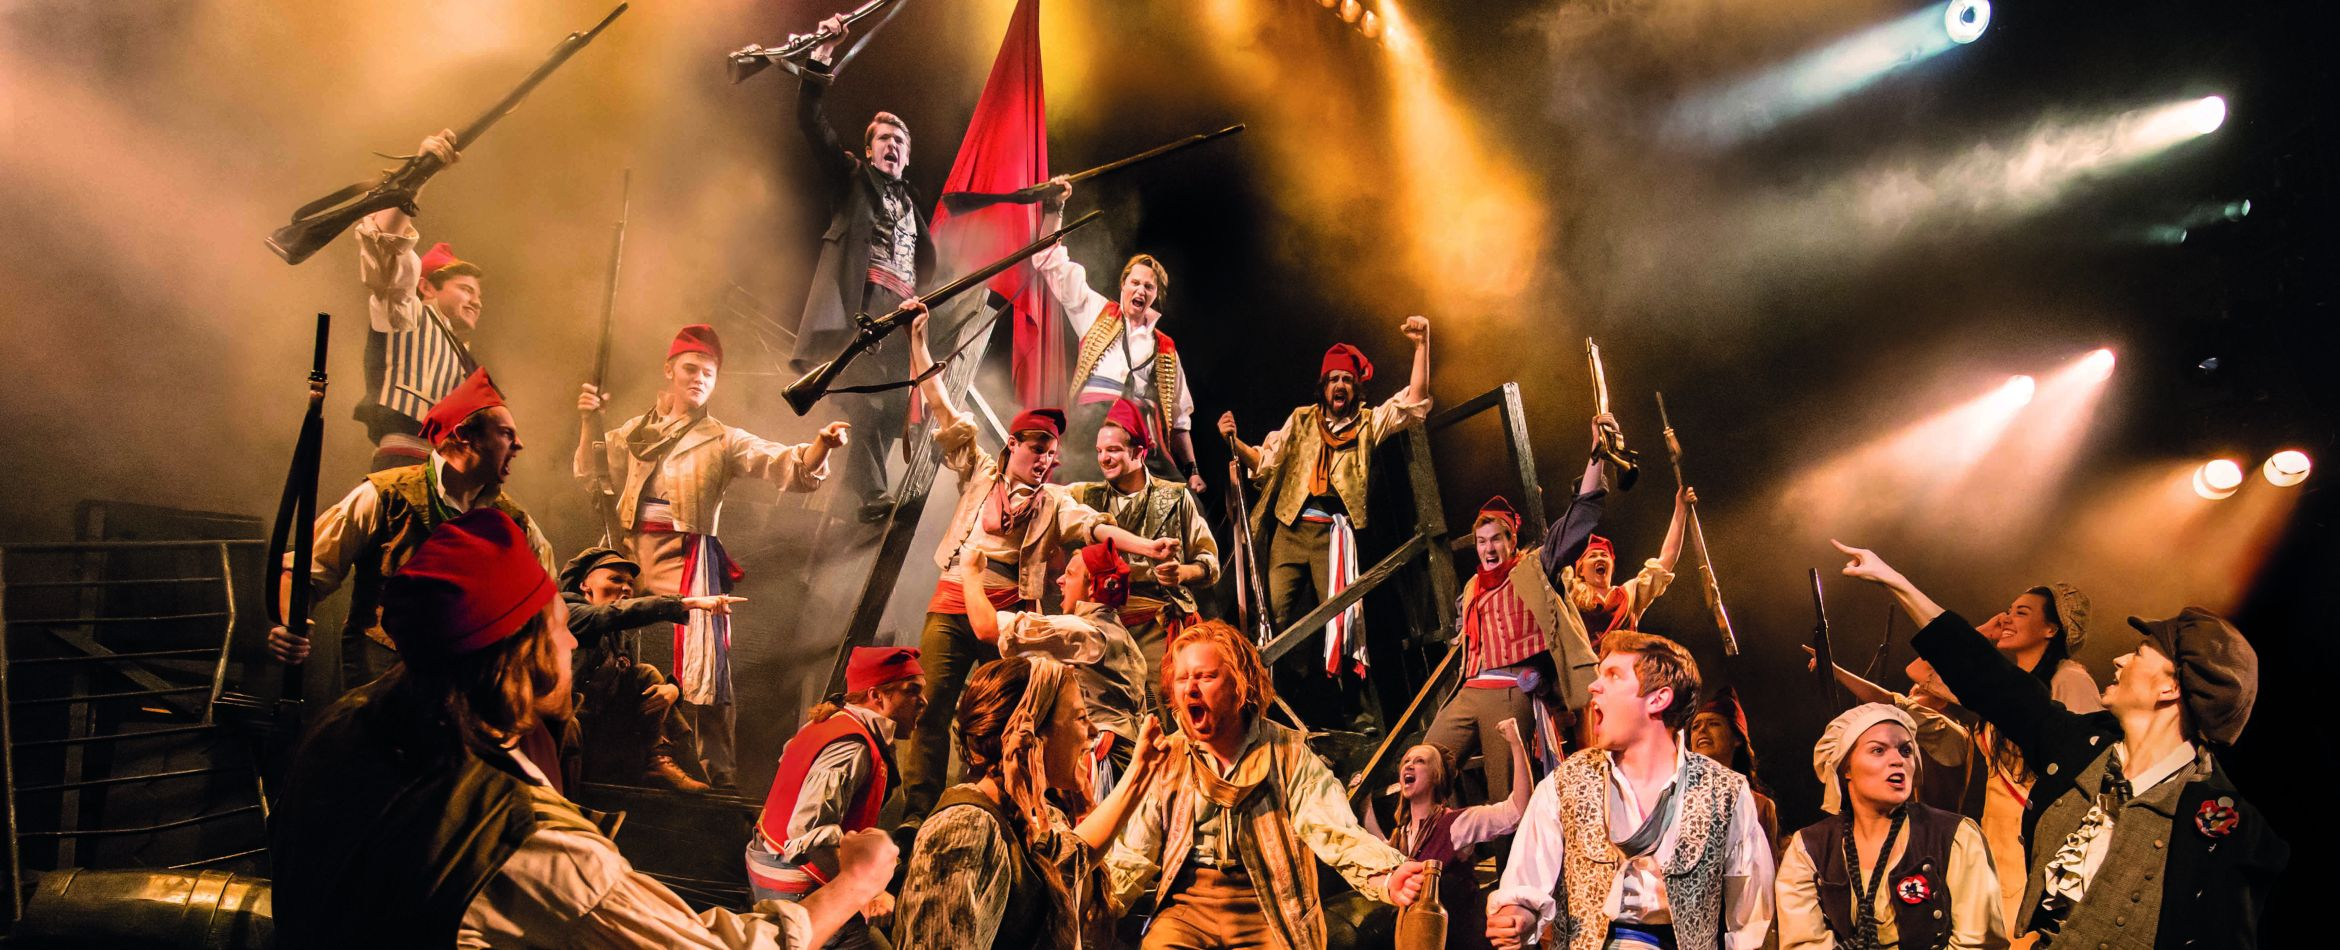 Les Misérables. The Barricade. Photo credit Johan Persson.jpg